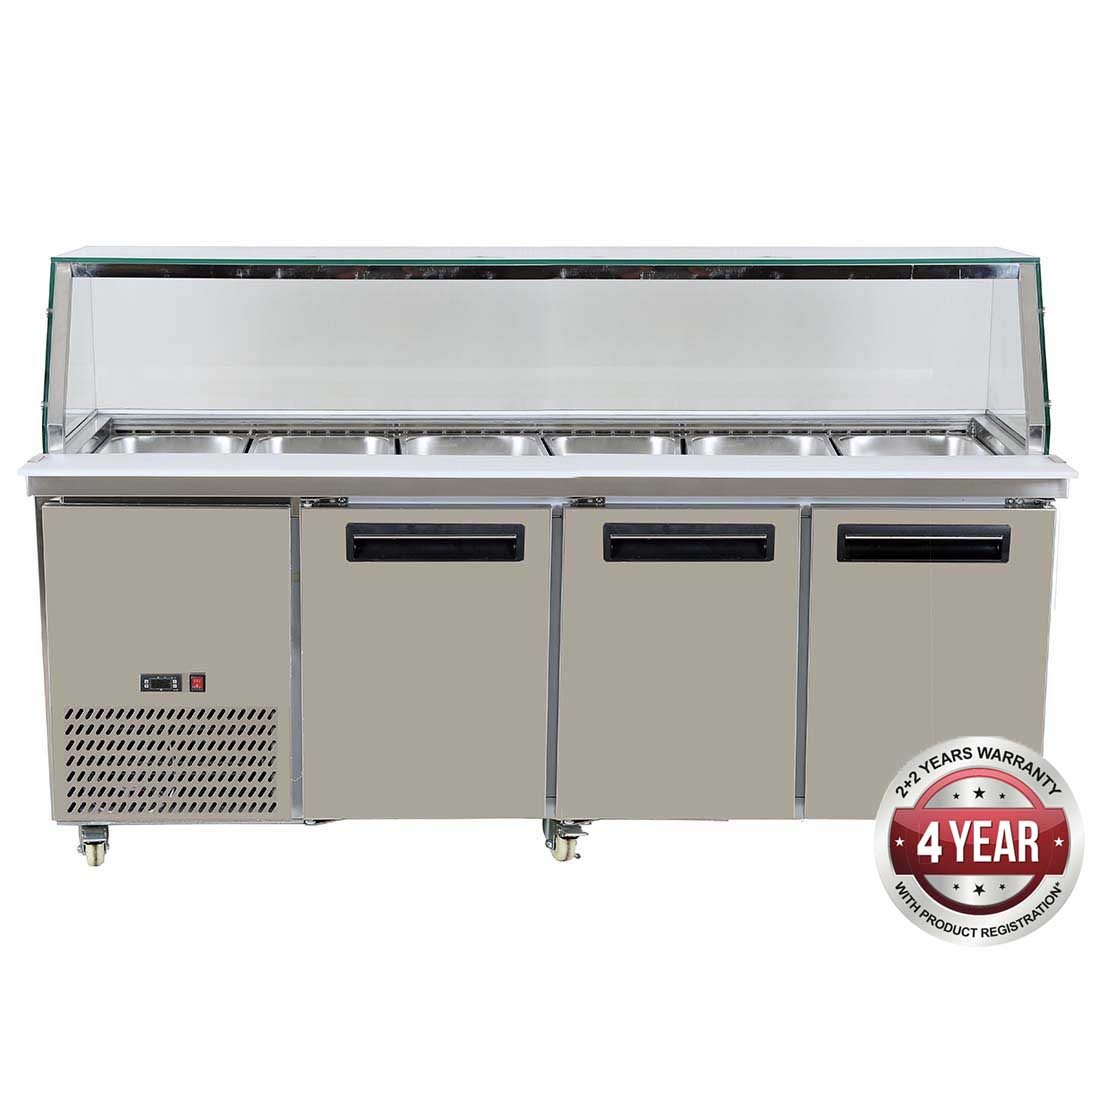 FED Cold Salad & Noodle Bar 6x1/1 GN Pans - PG210FA-YG